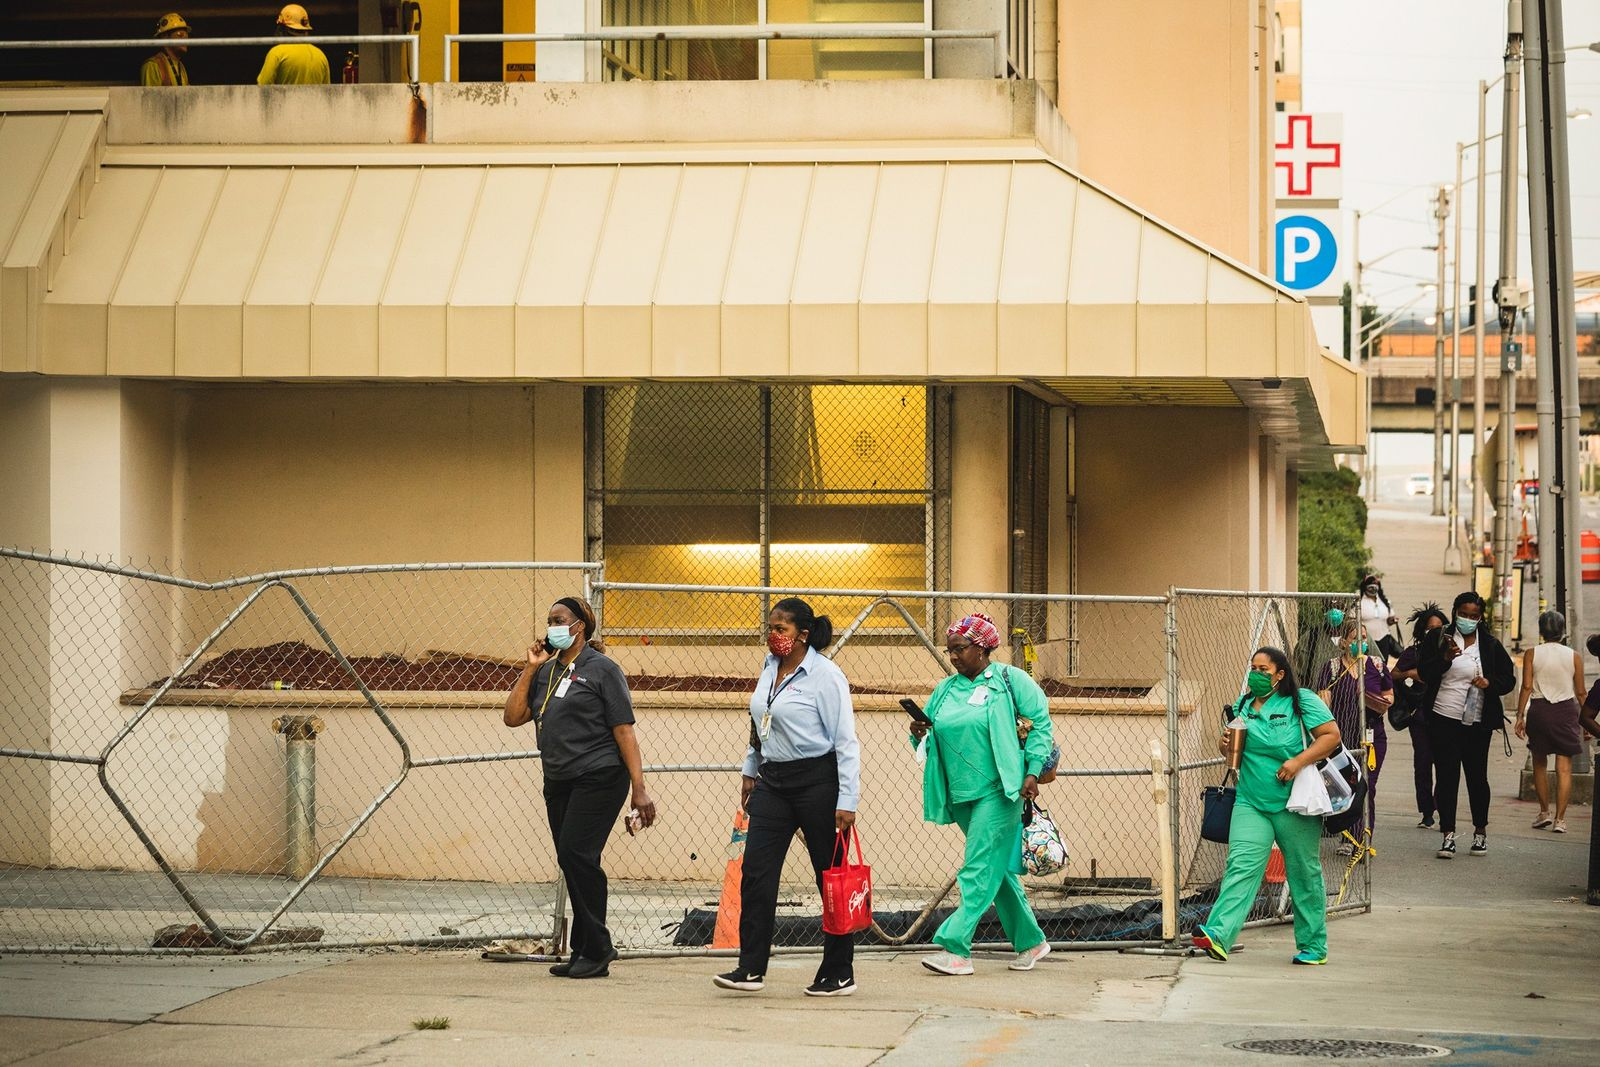 Healthcare workers arrive for their shift at Grady Memorial Hospital in Atlanta, Georgia, where COVID-19 cases ...